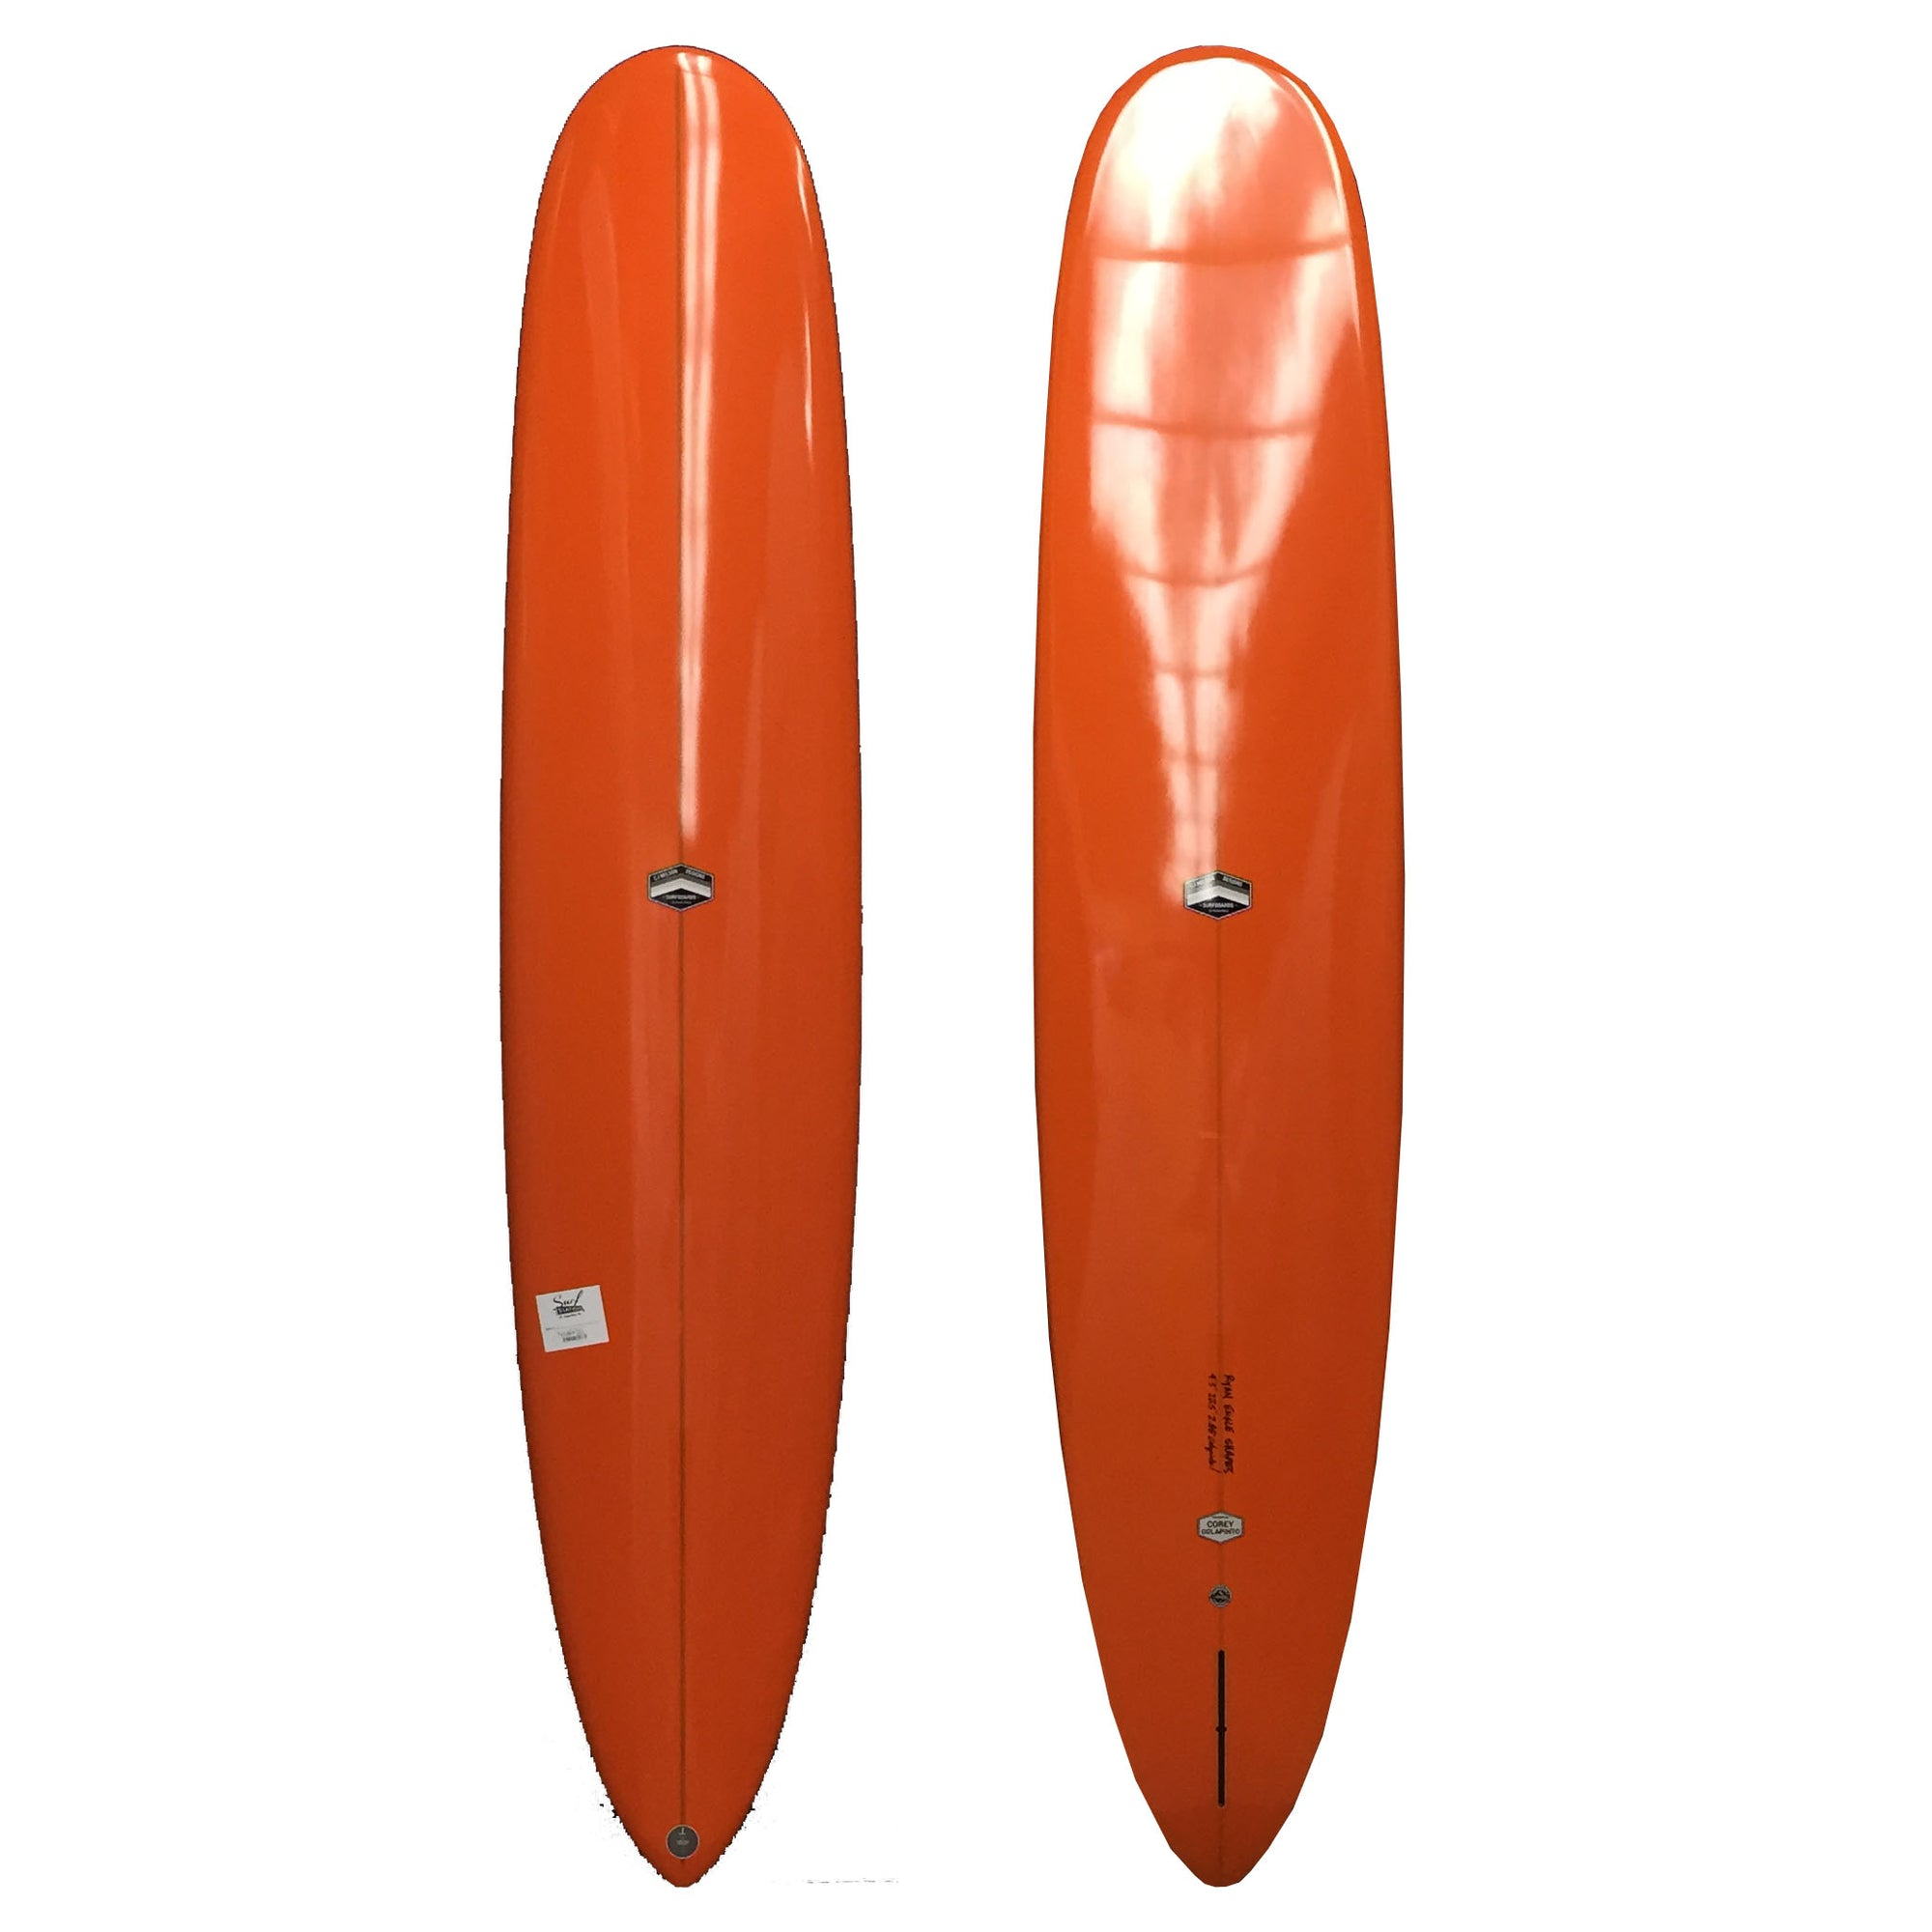 Carve Sports CJ Nelson Colapintail Longboard